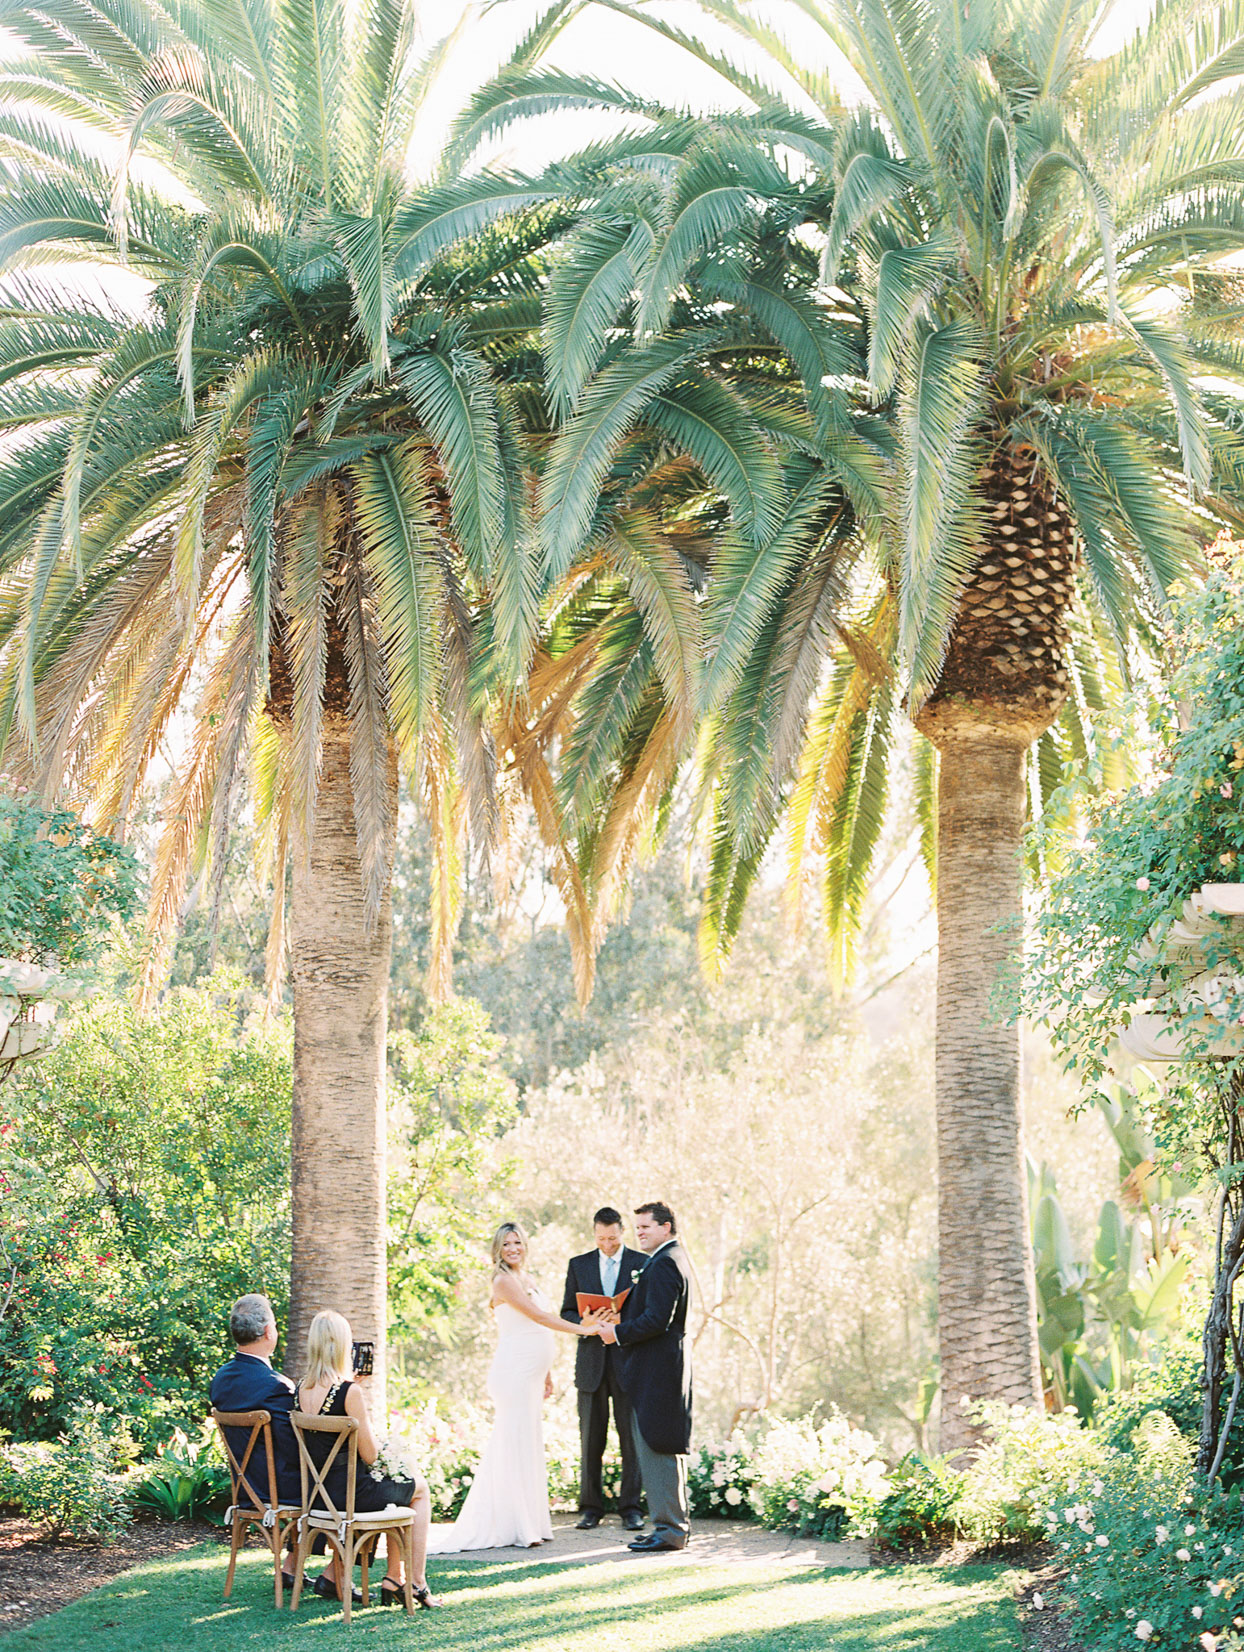 wedding couple holding hands during ceremony under palm trees